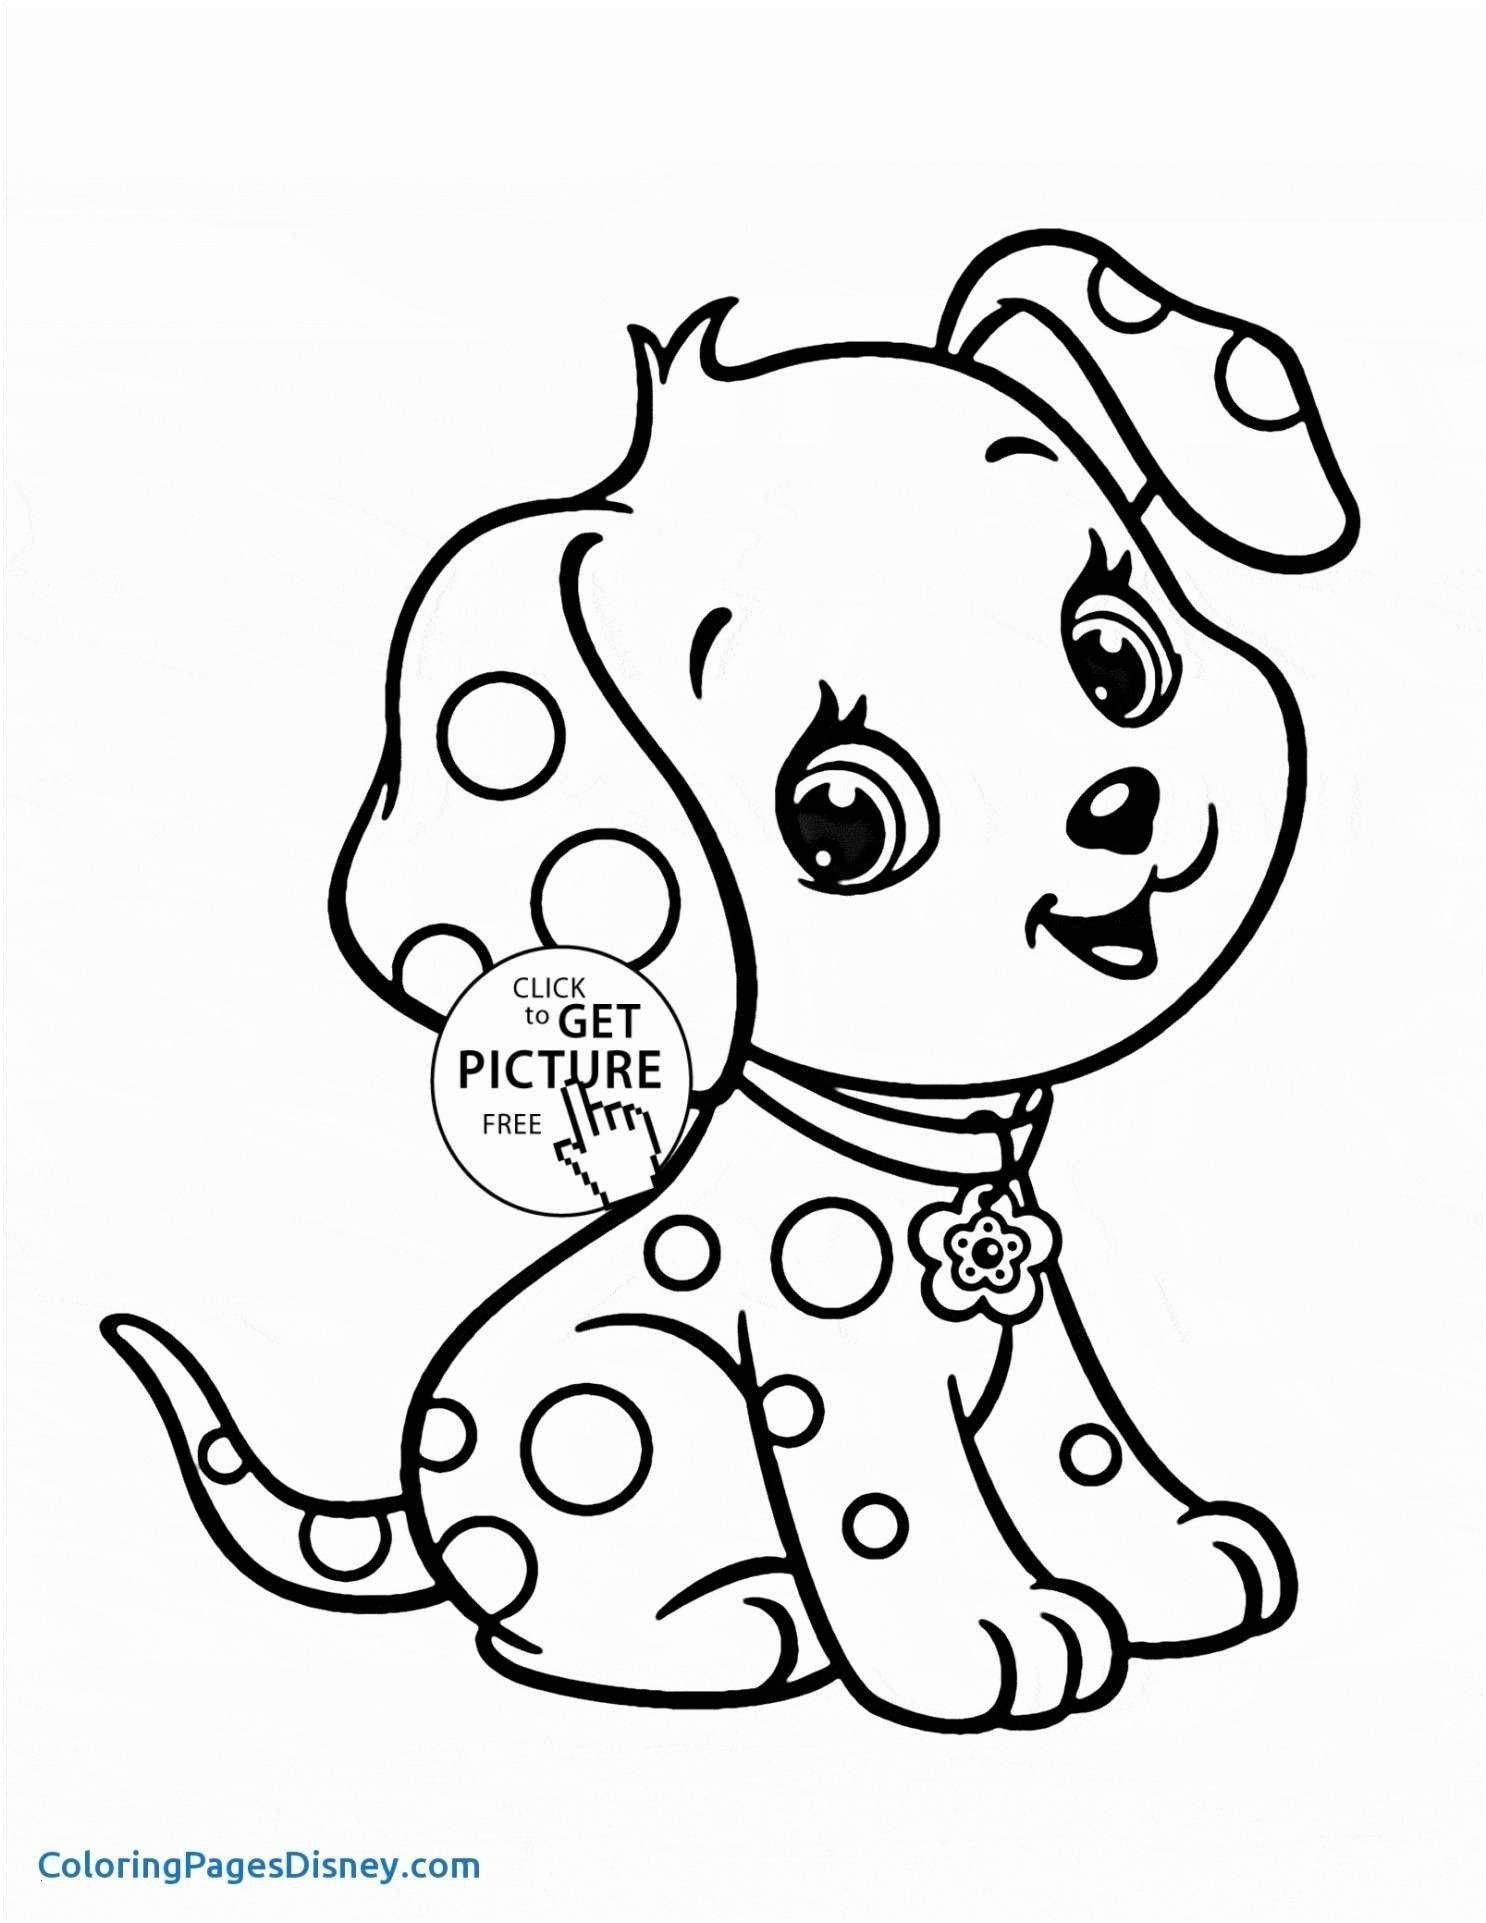 Best Of Jojo Siwa Coloring Pages Printable Unicorn Coloring Pages Puppy Coloring Pages Princess Coloring Pages